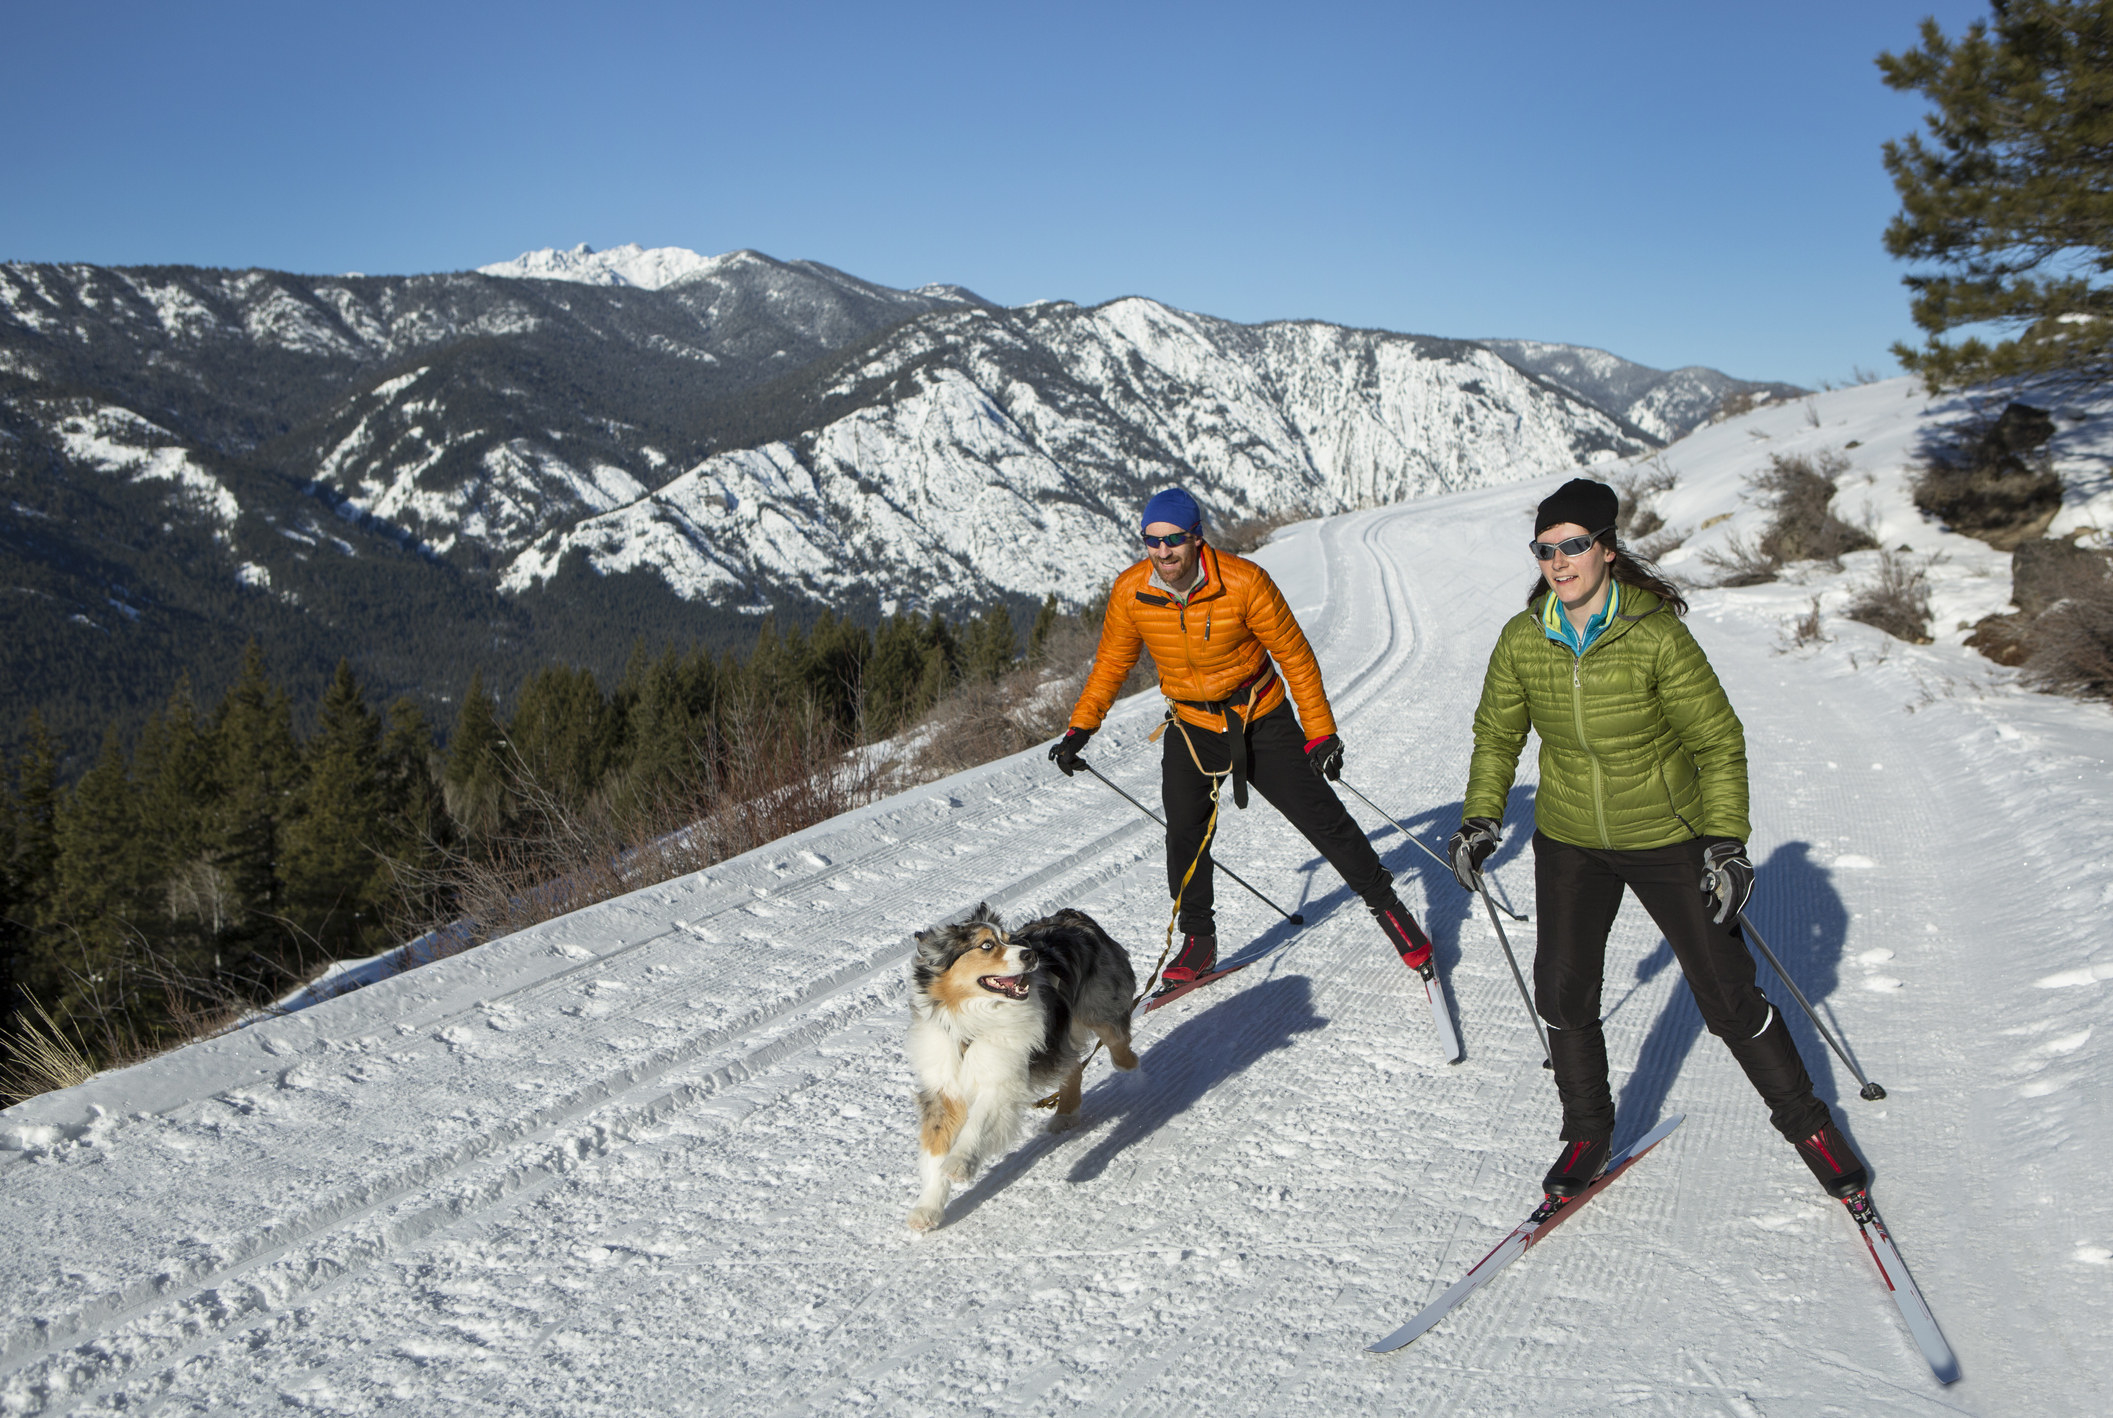 A couple and their dog skijoring.